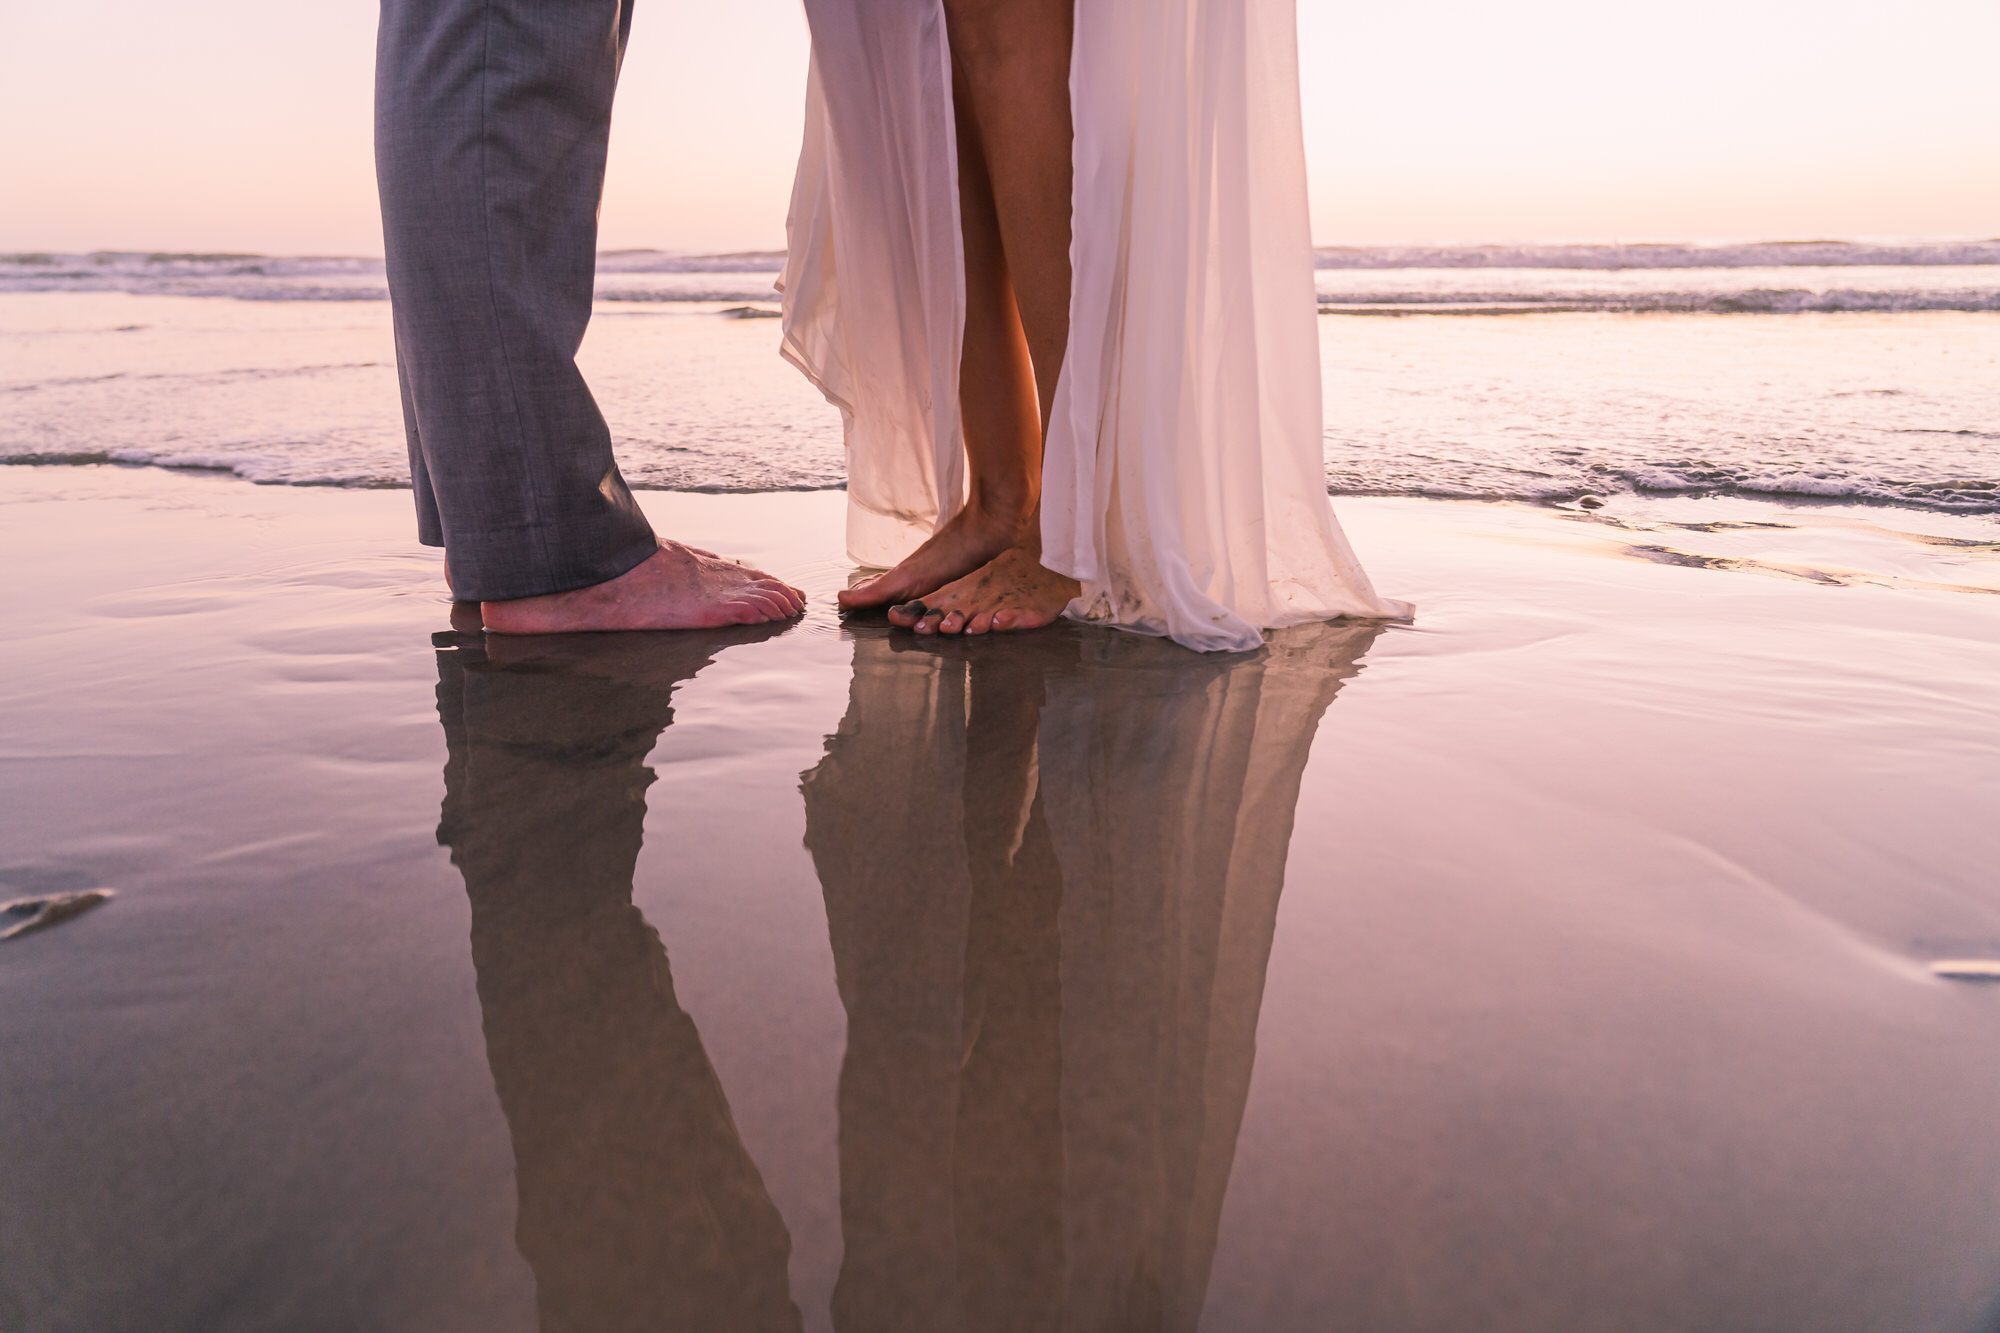 carlsbad_wedding_044